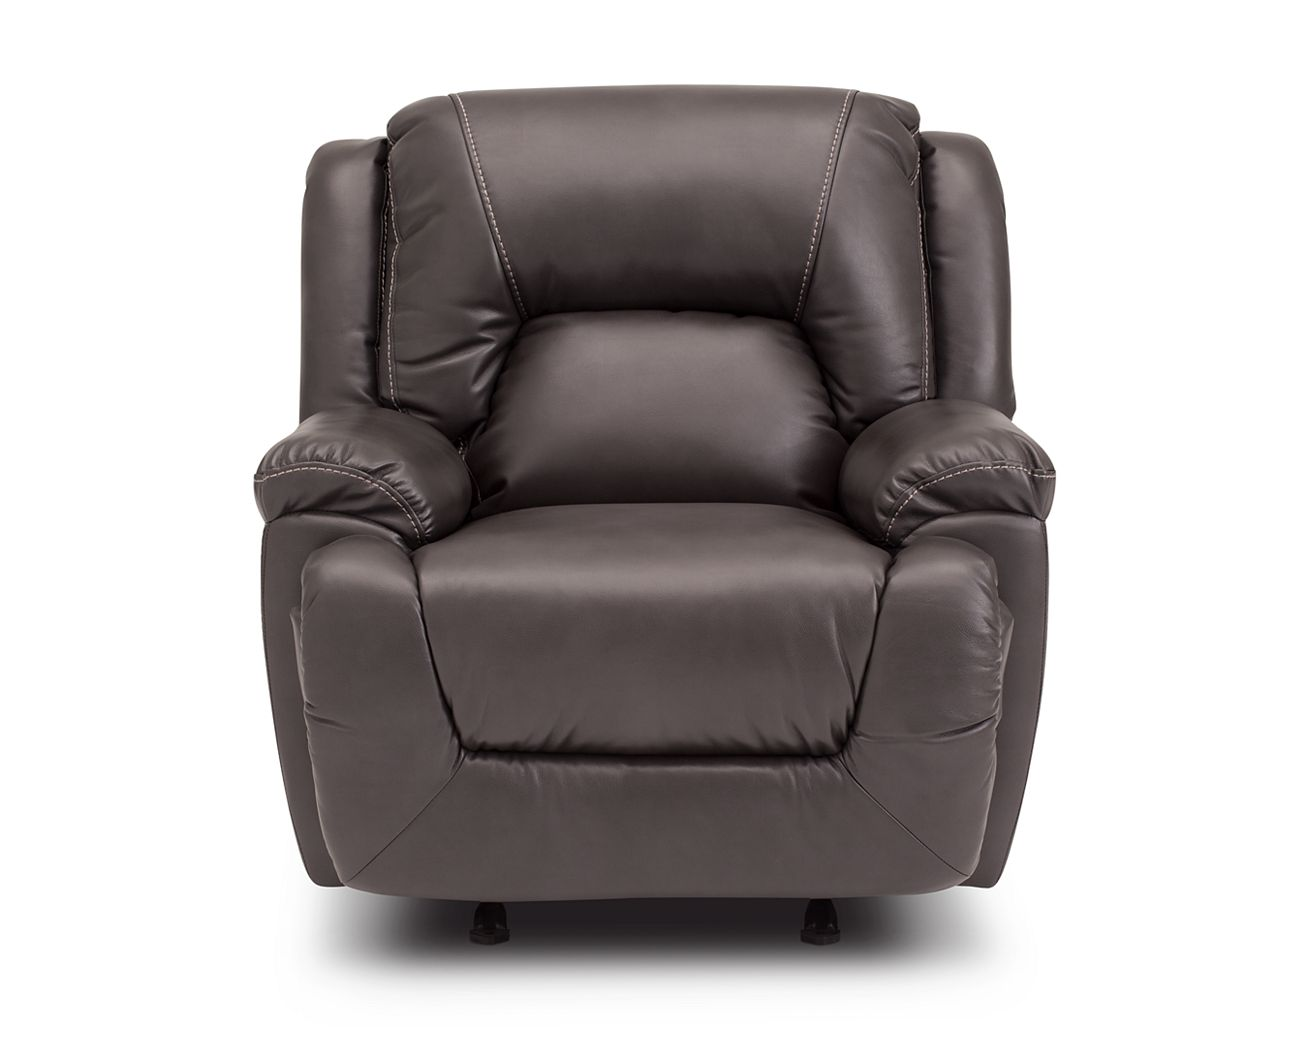 Leather chair and a half recliner - Leather Chair And A Half Recliner